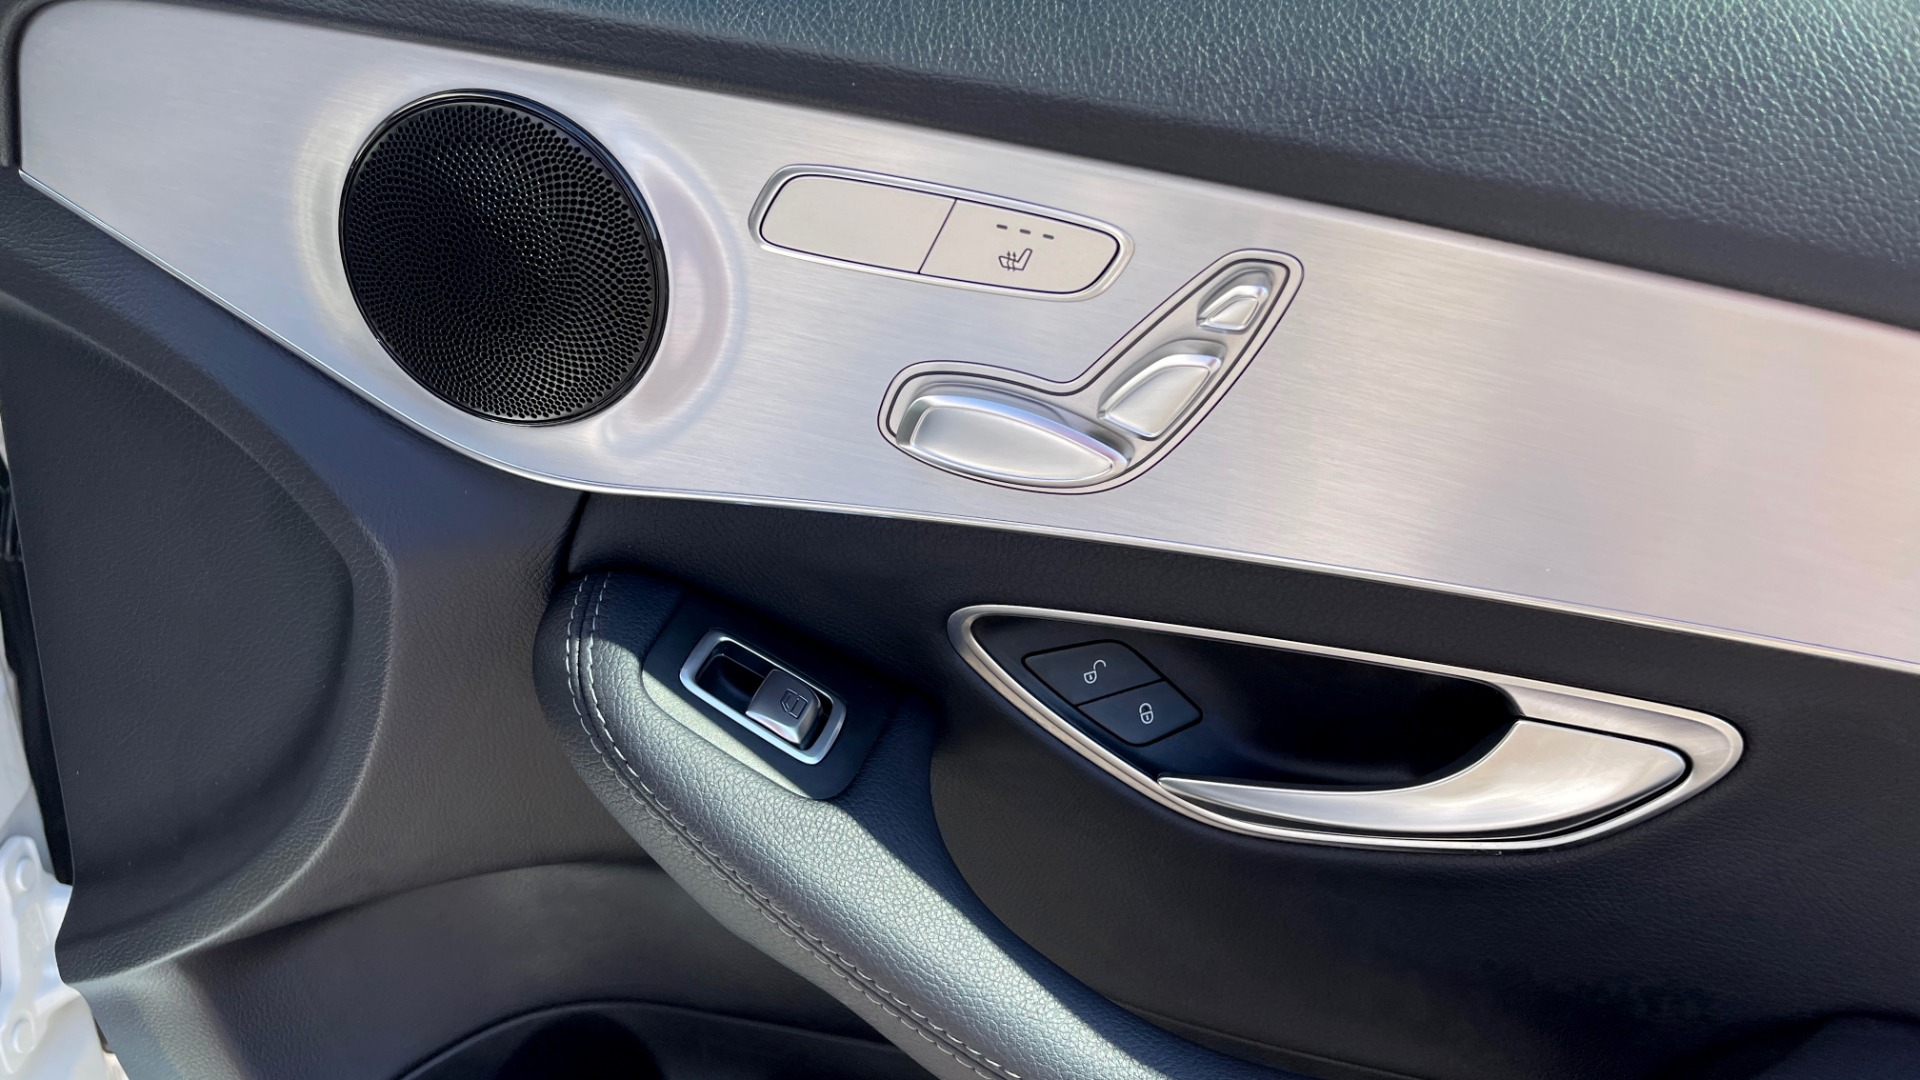 Used 2018 Mercedes-Benz C-CLASS C 300 PREMIUM / APPLE CARPLAY / KEYLESS-GO / SUNROOF / REARVIEW for sale $32,995 at Formula Imports in Charlotte NC 28227 51